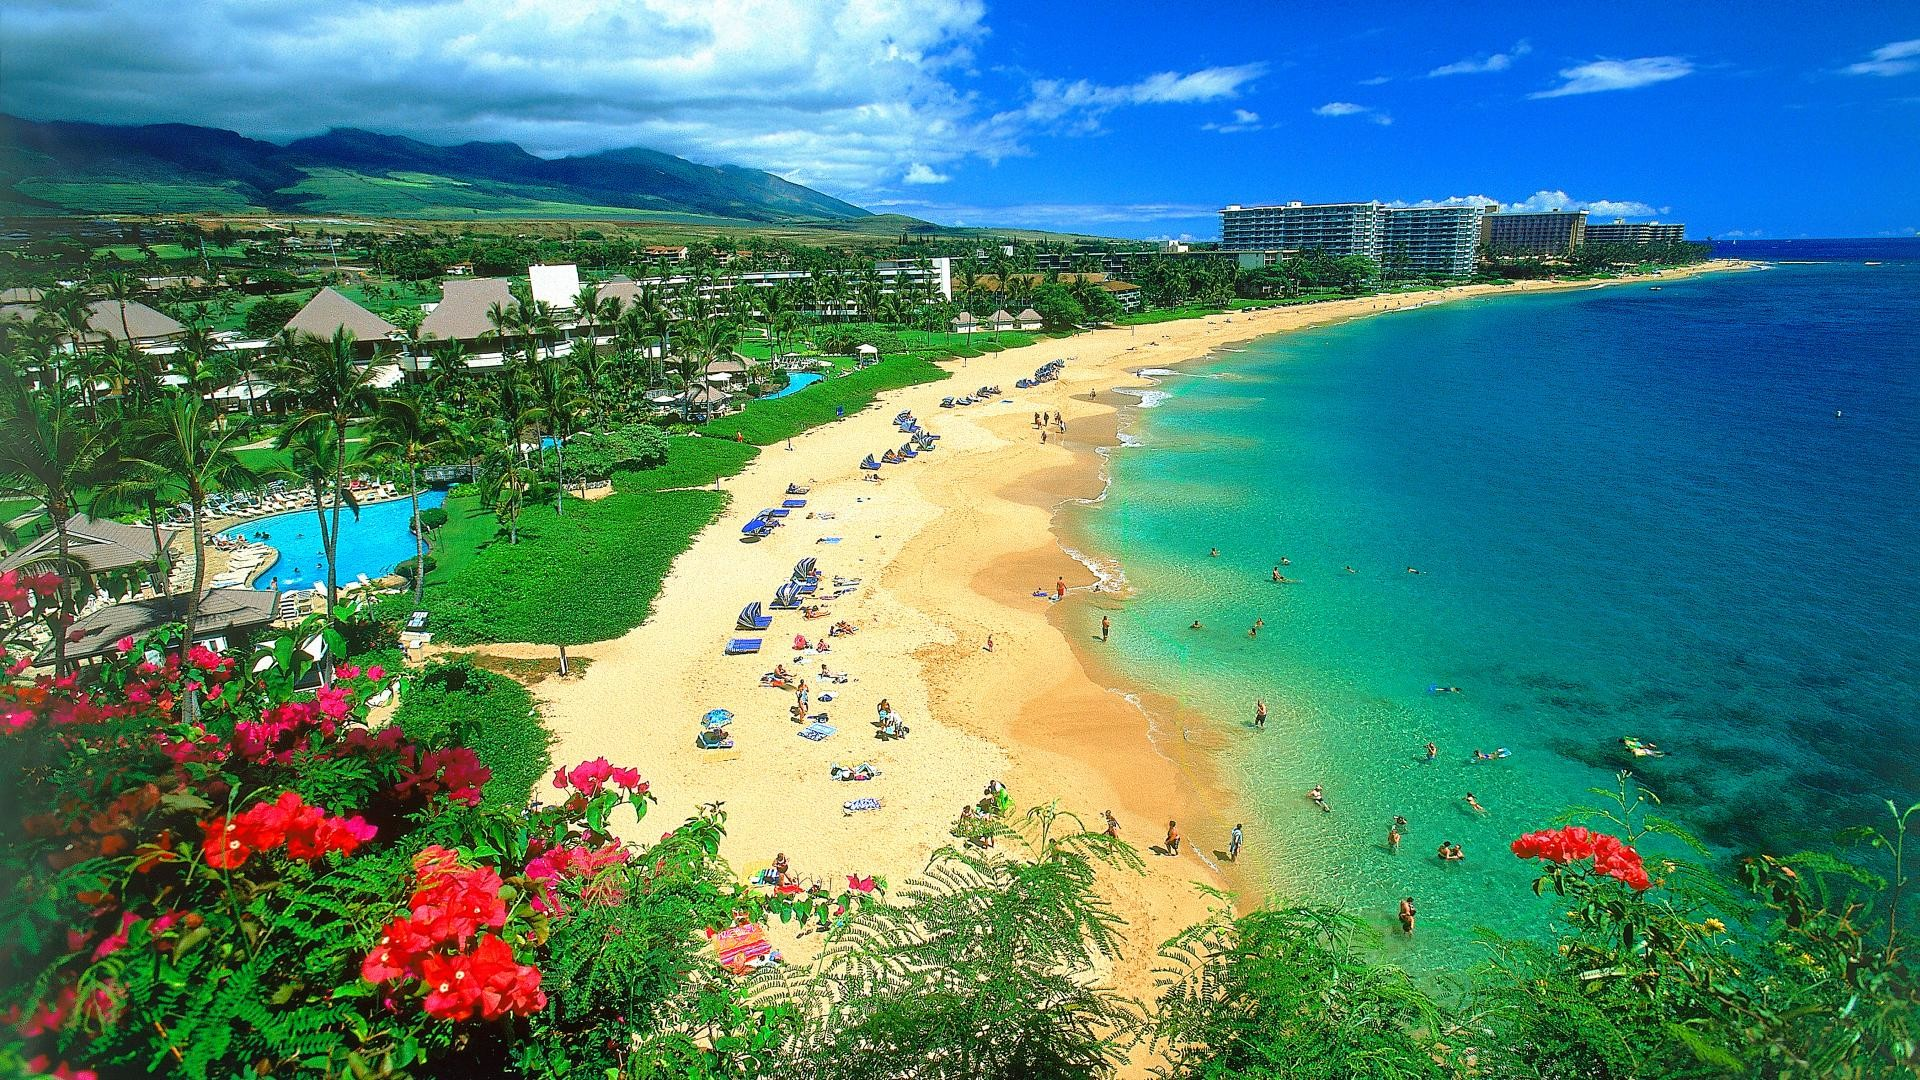 hawaii beach pictures wallpapers (57+ images)